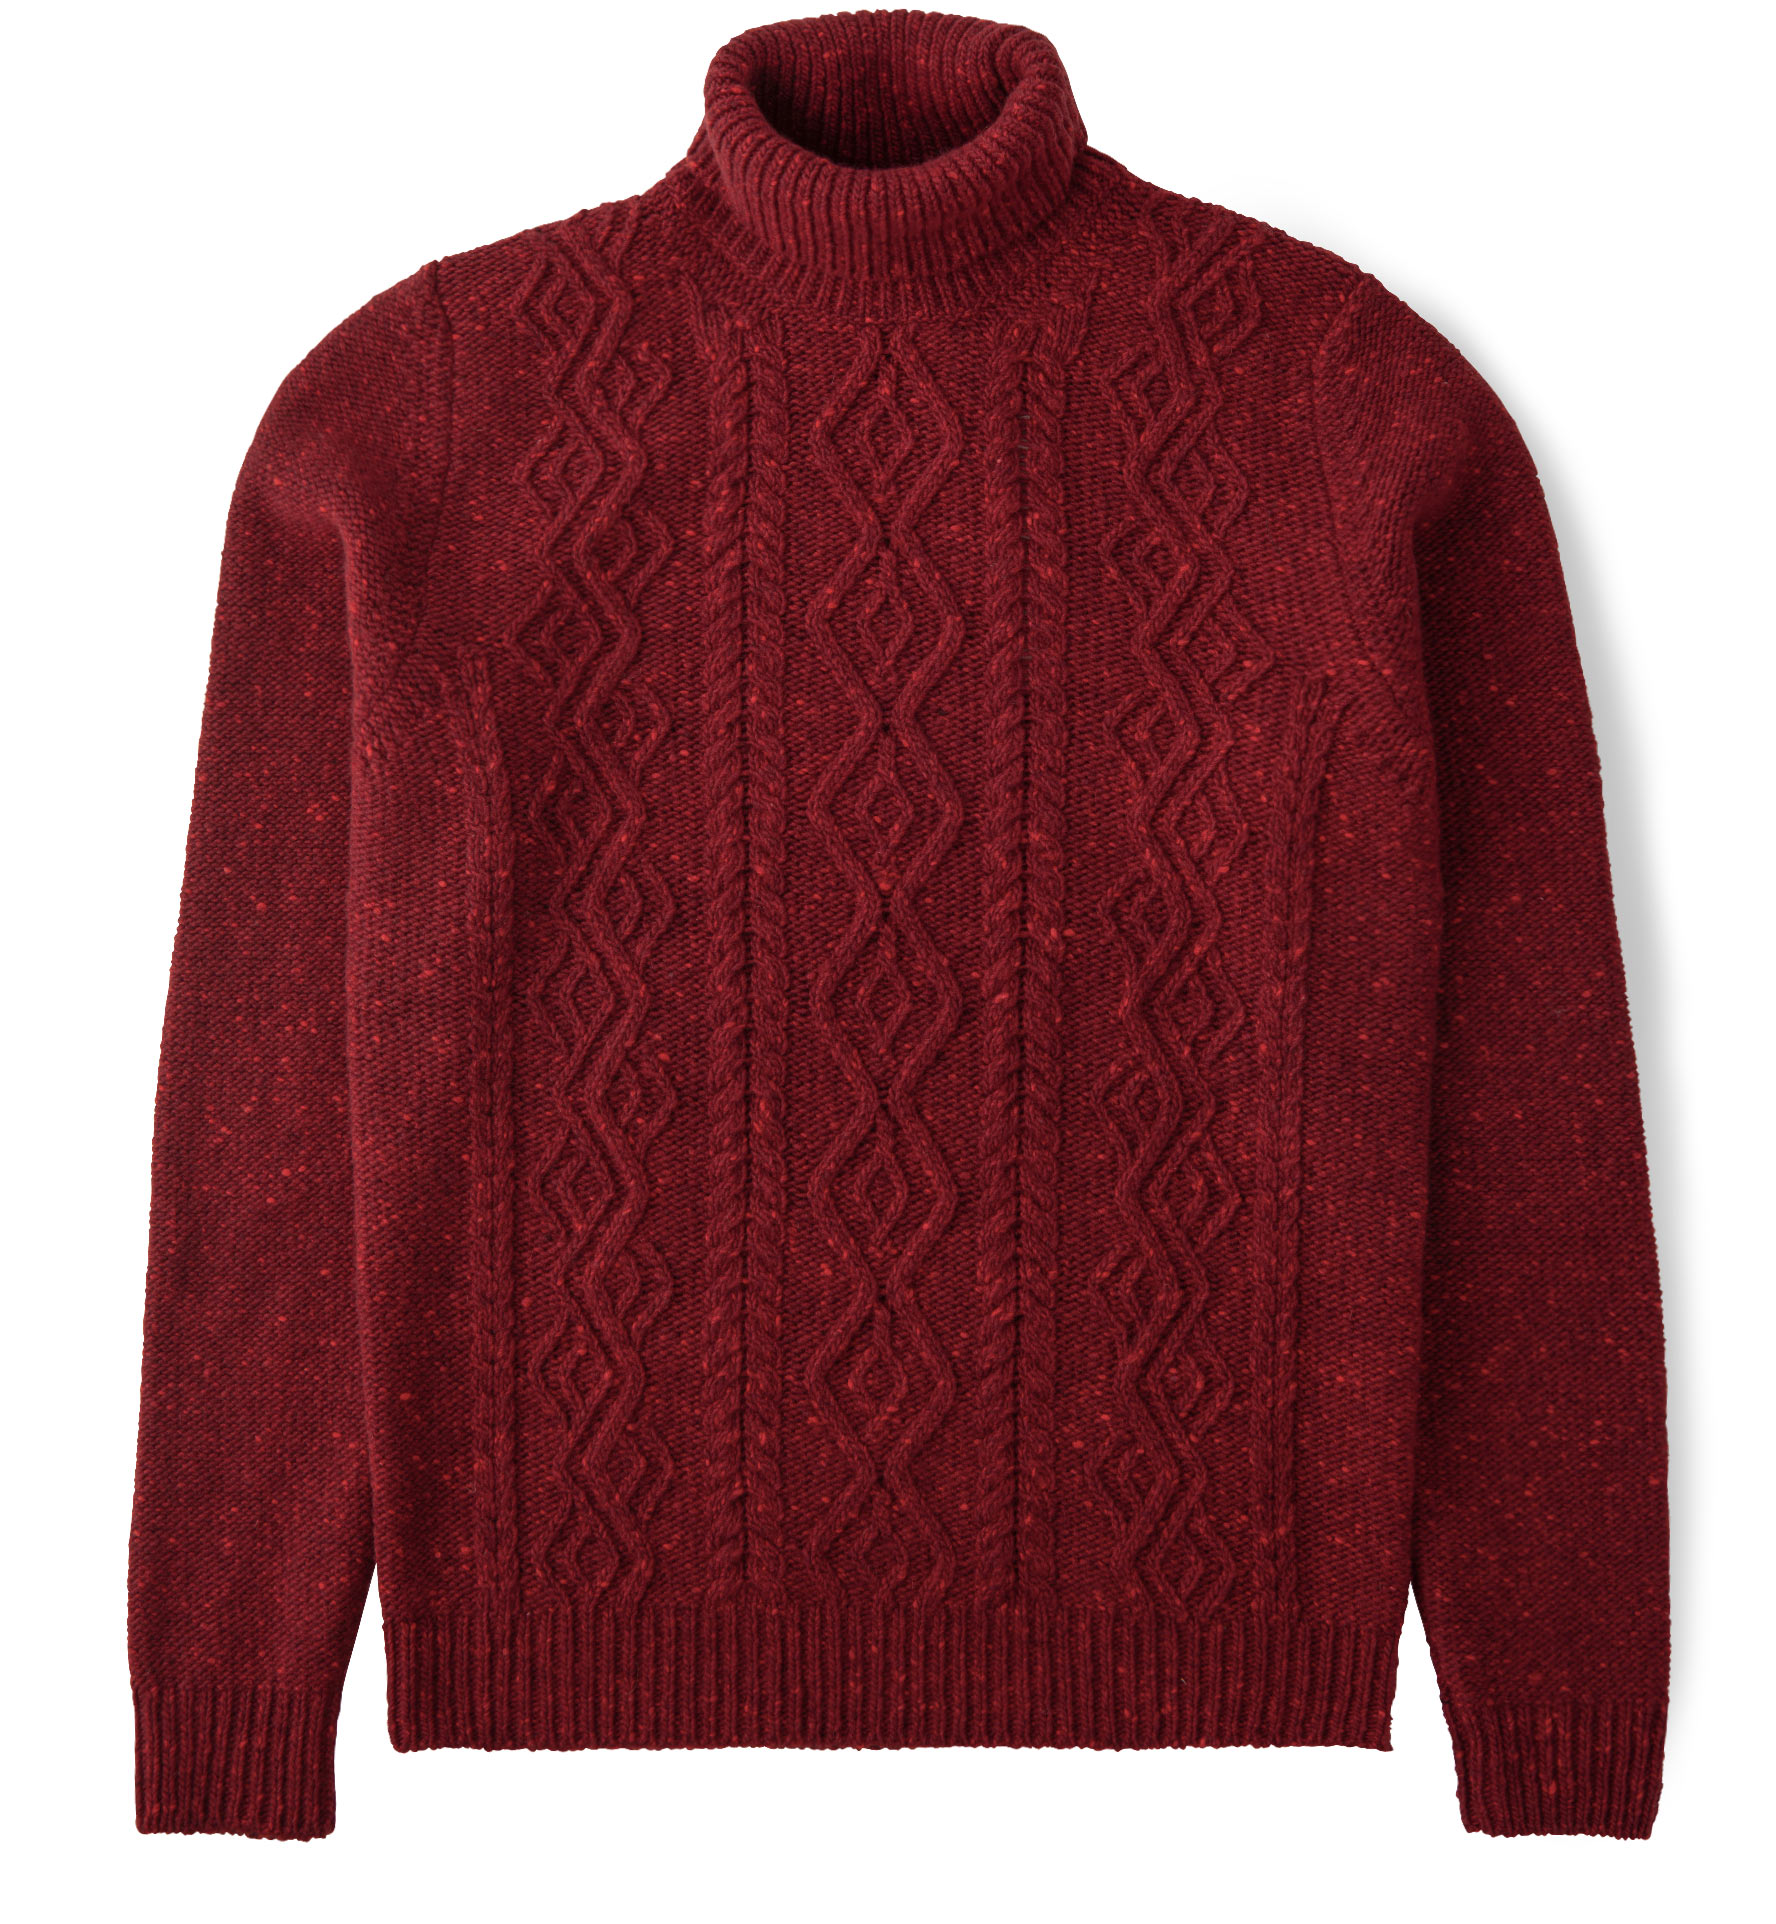 Zoom Image of Red Donegal Wool and Cashmere Aran Rollneck Sweater